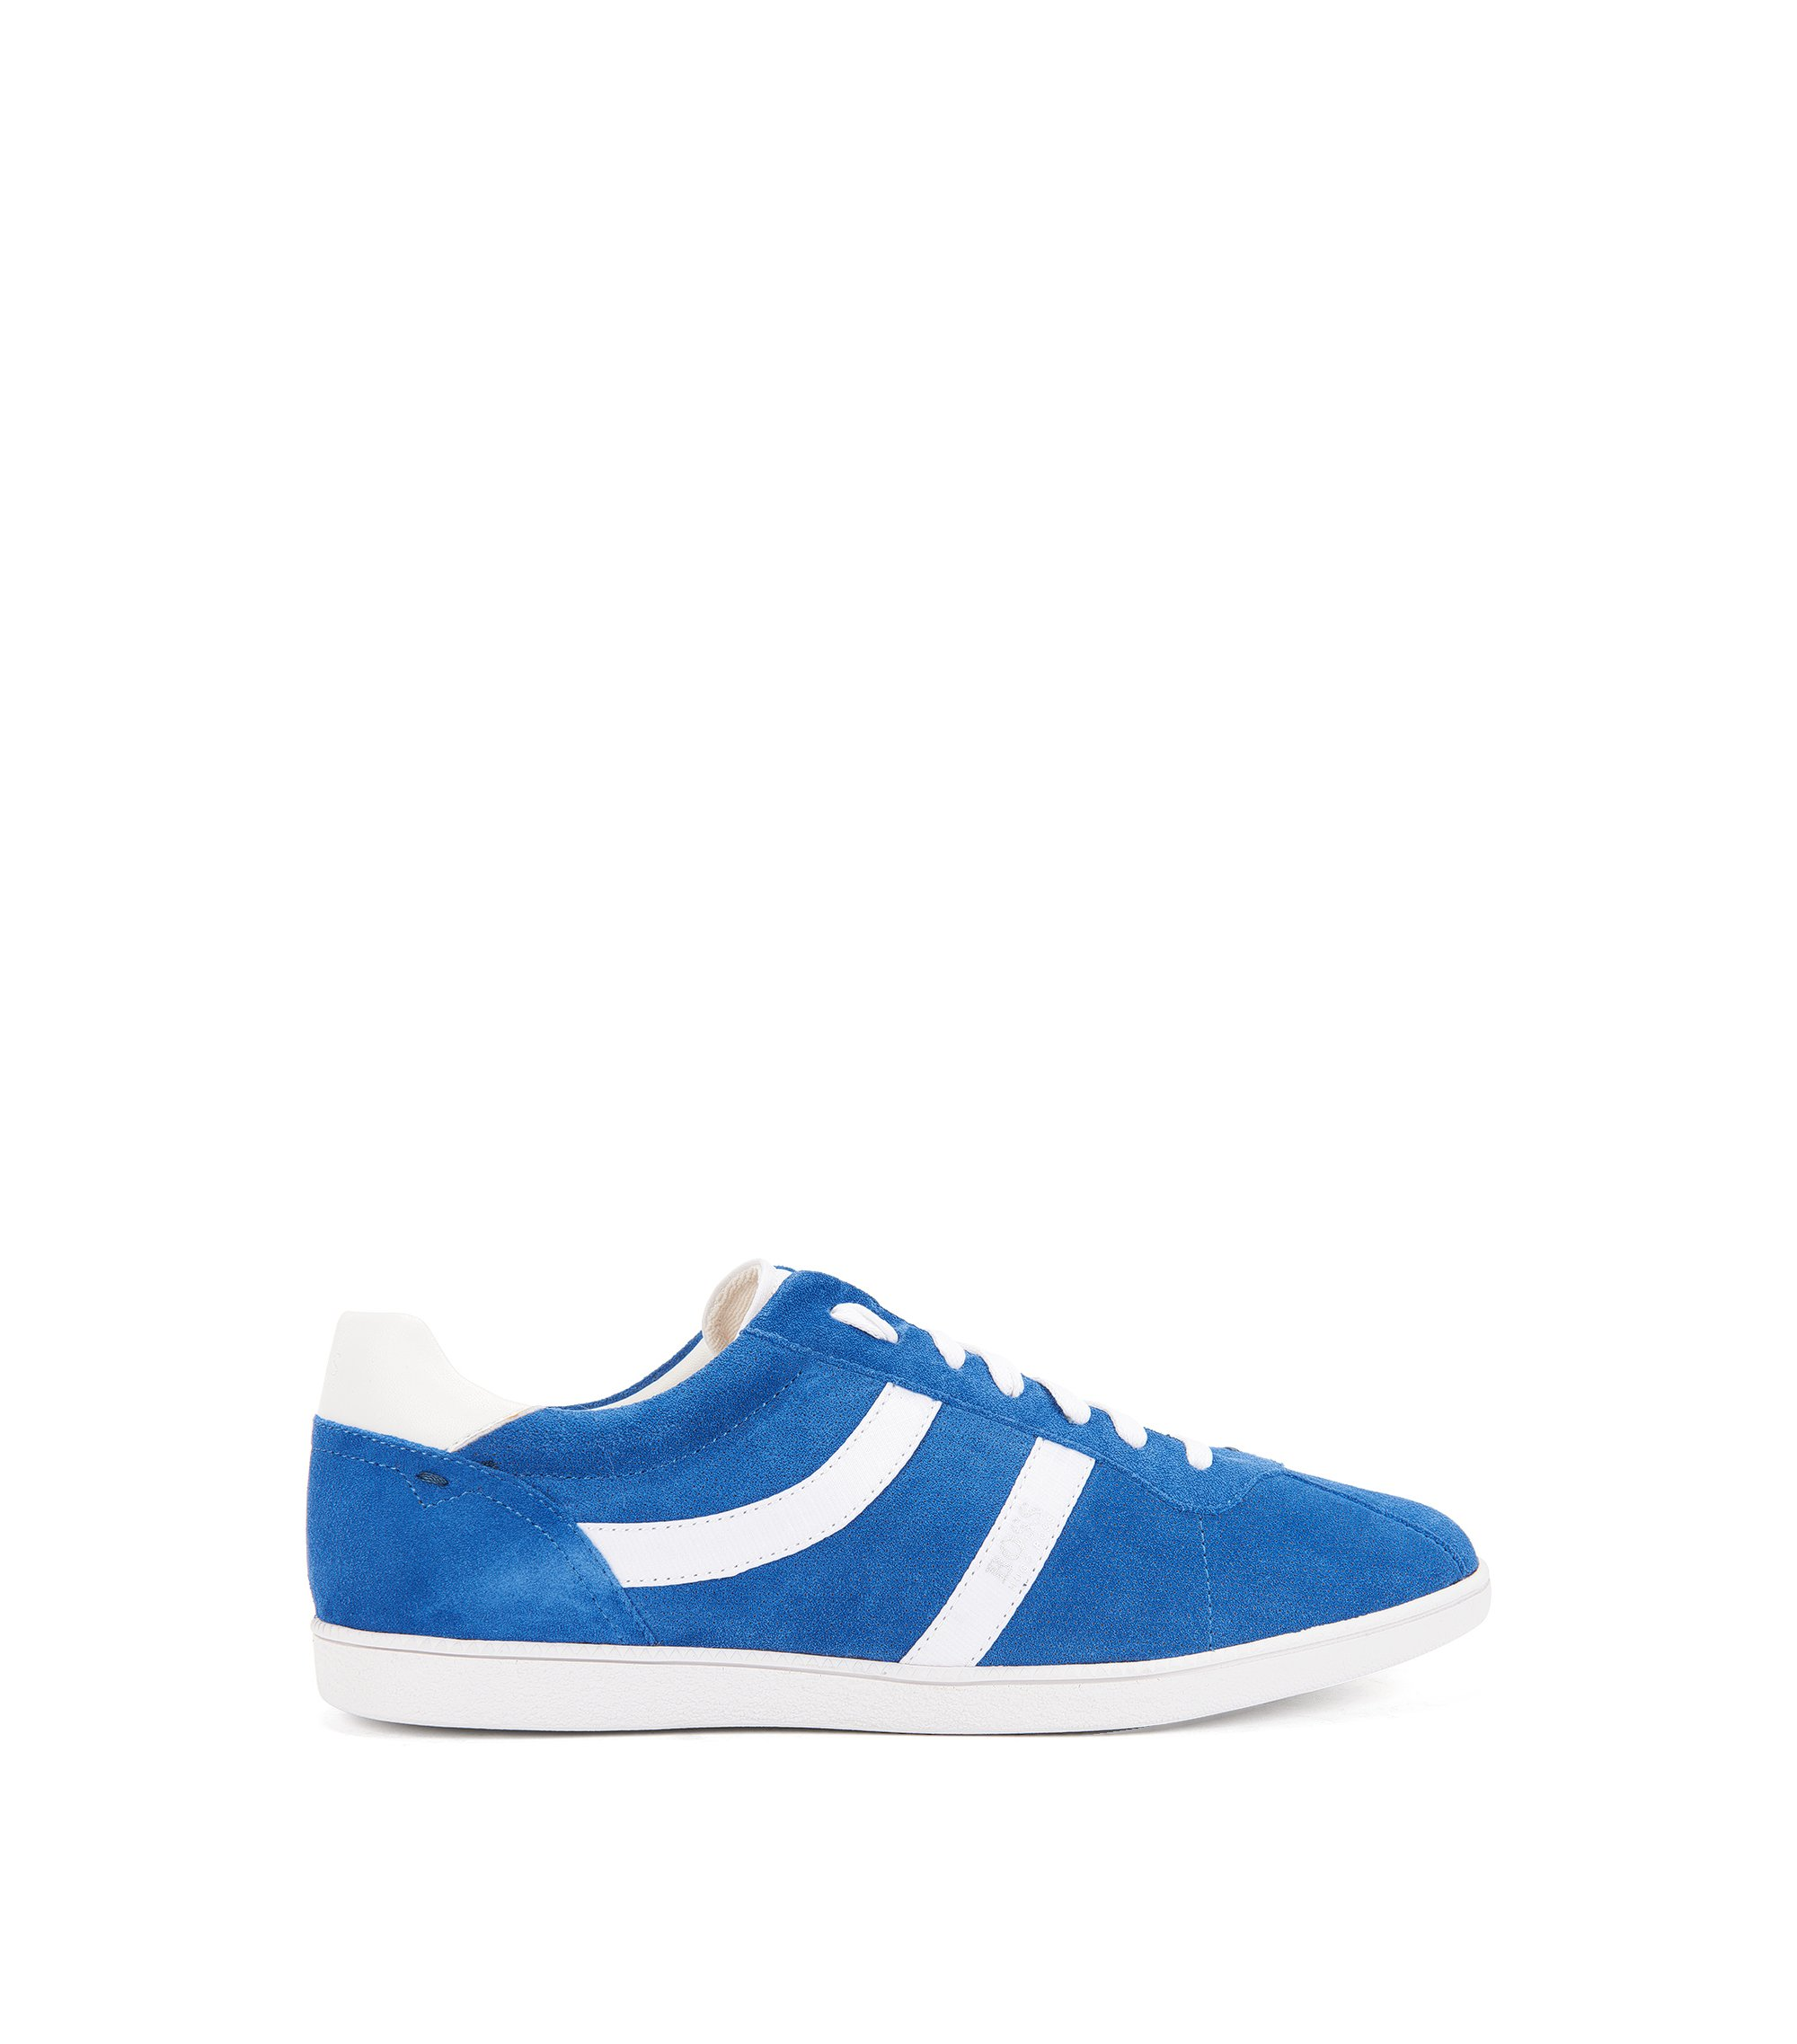 Sneakers low-top in pelle scamosciata liscia e traforata, Blu